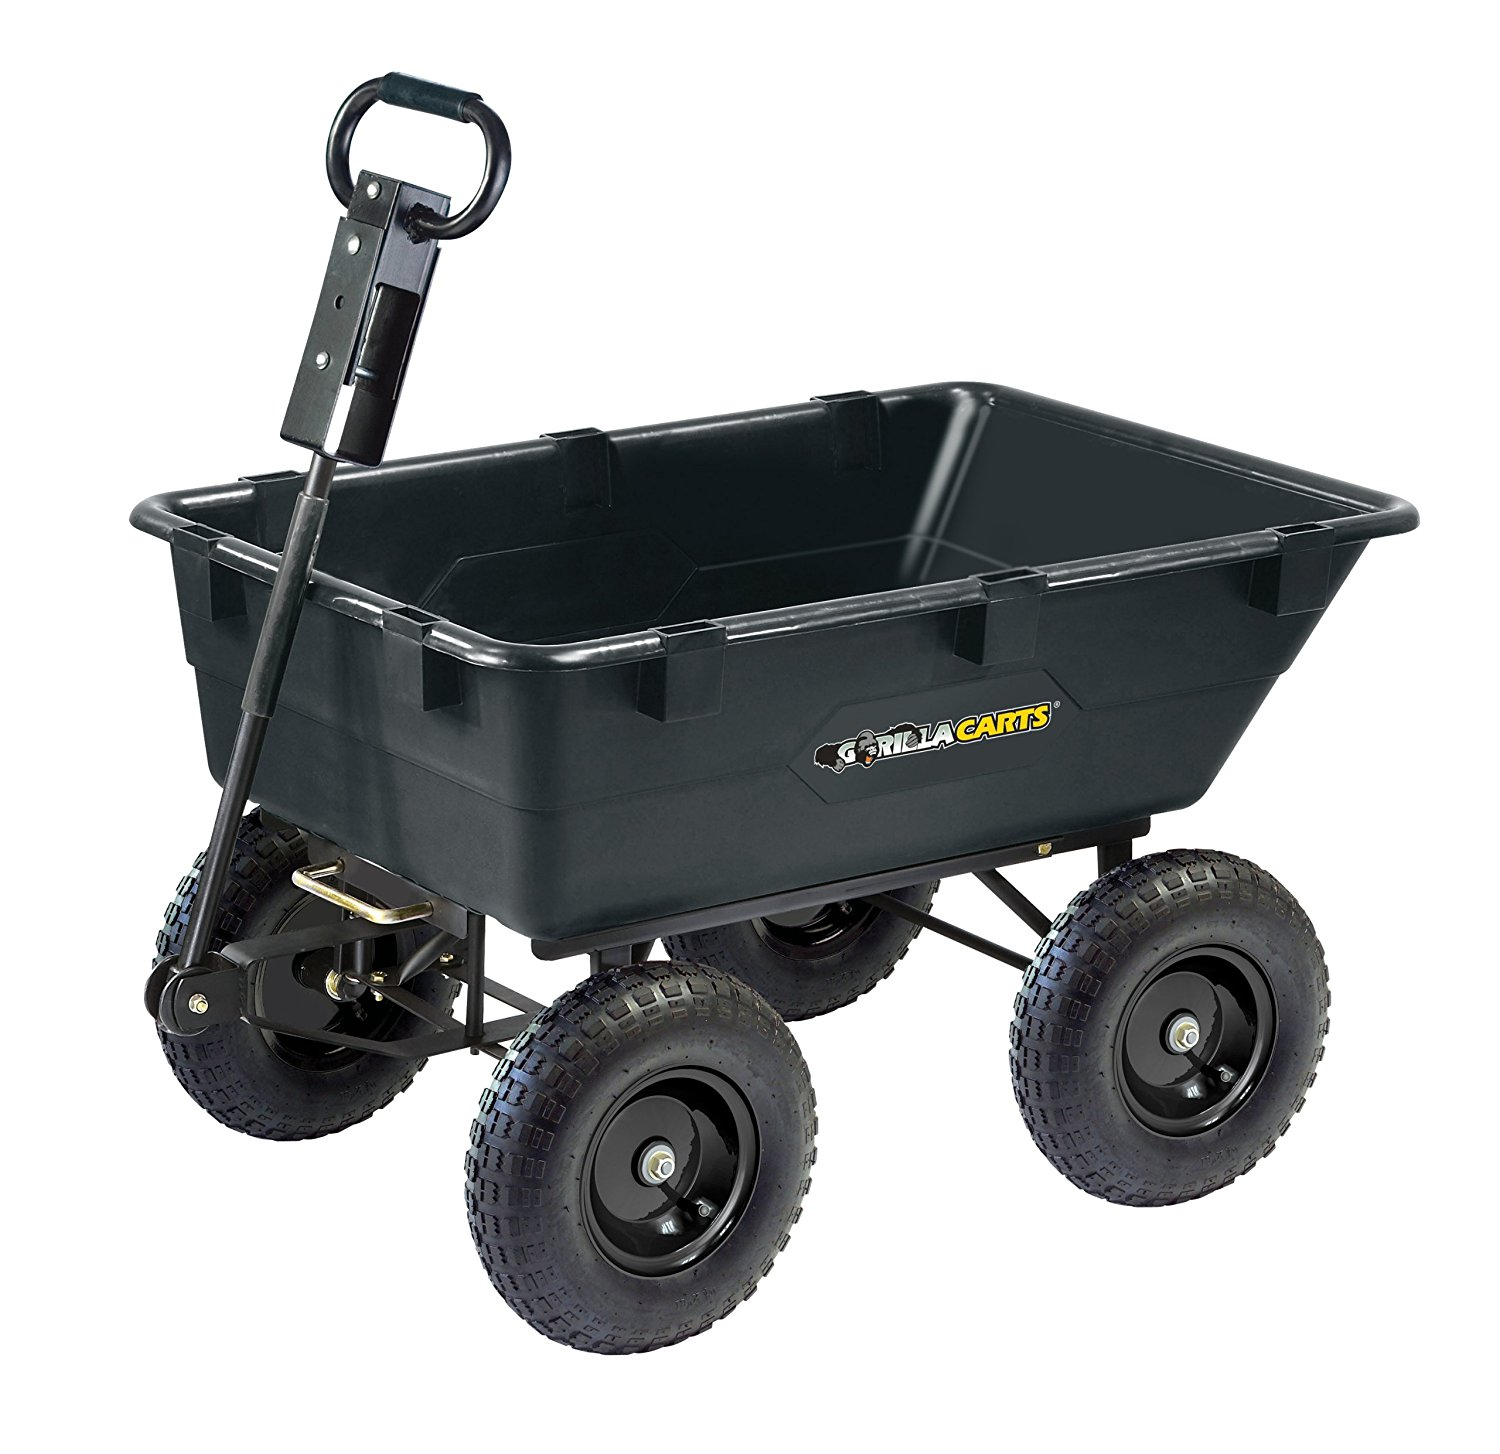 Gorilla Carts Heavy-Duty Garden Poly Dump Cart